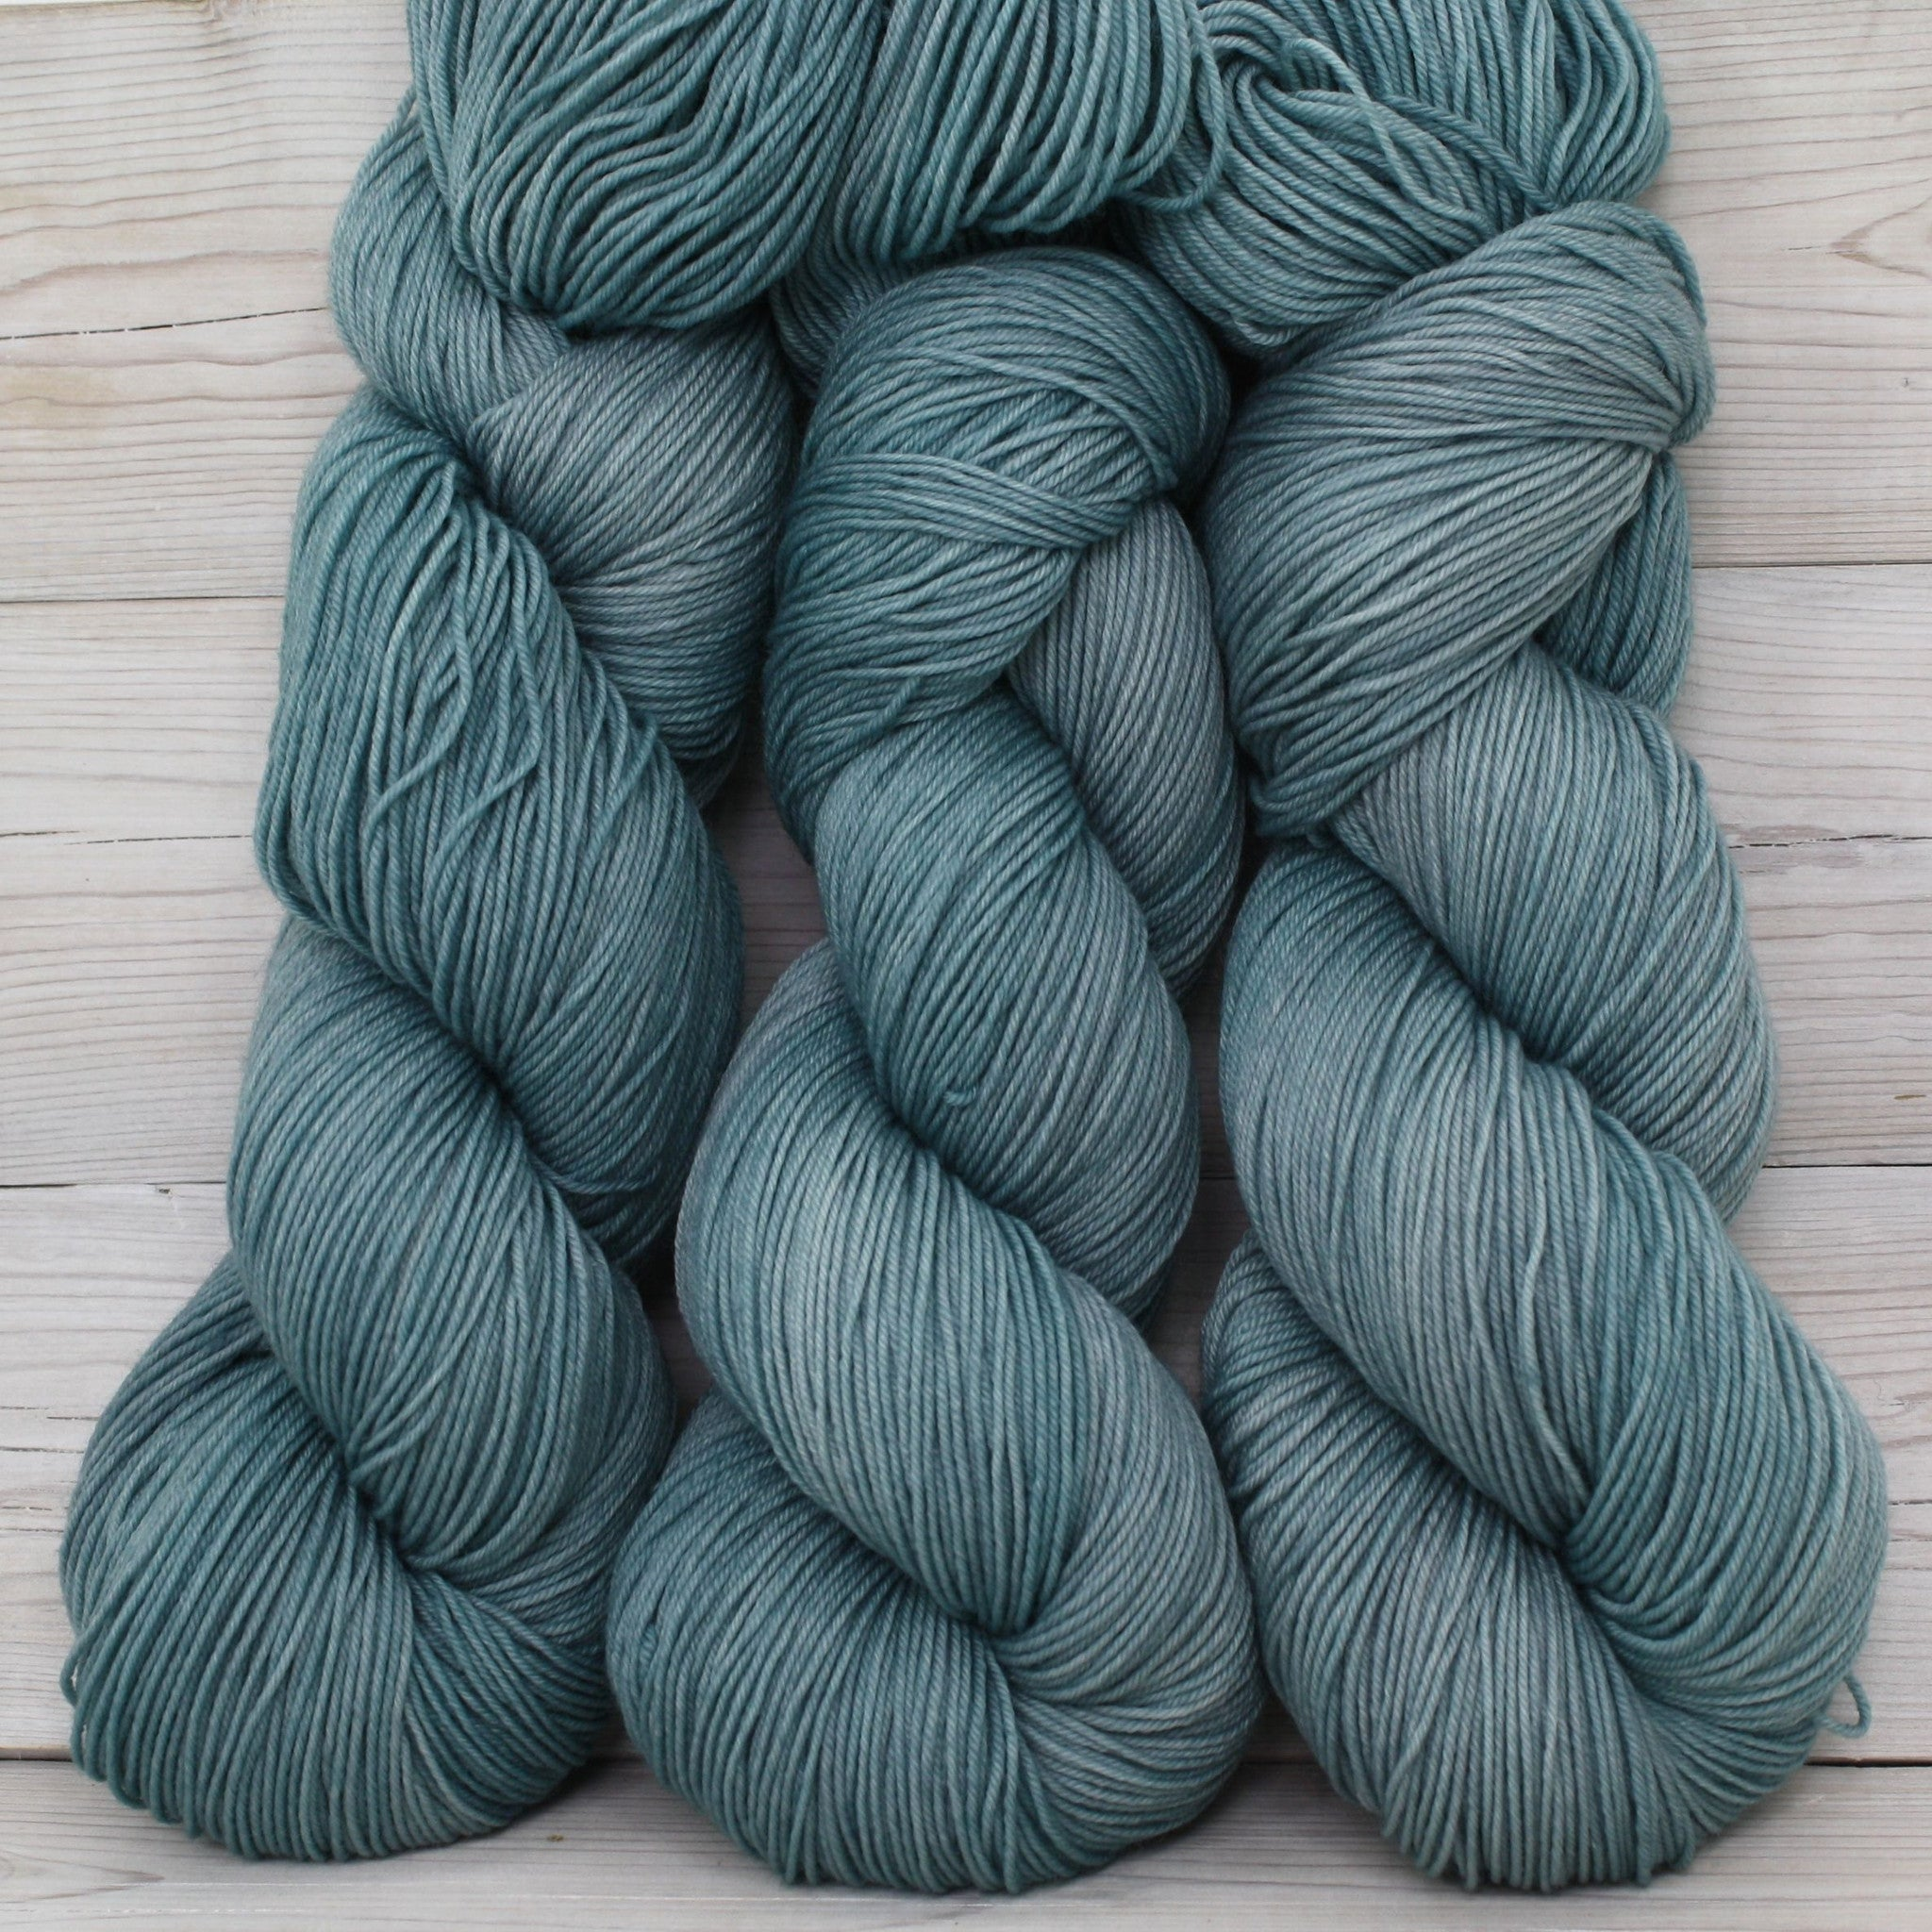 Athena Sock Yarn | Colorway: Harbor | Overstock